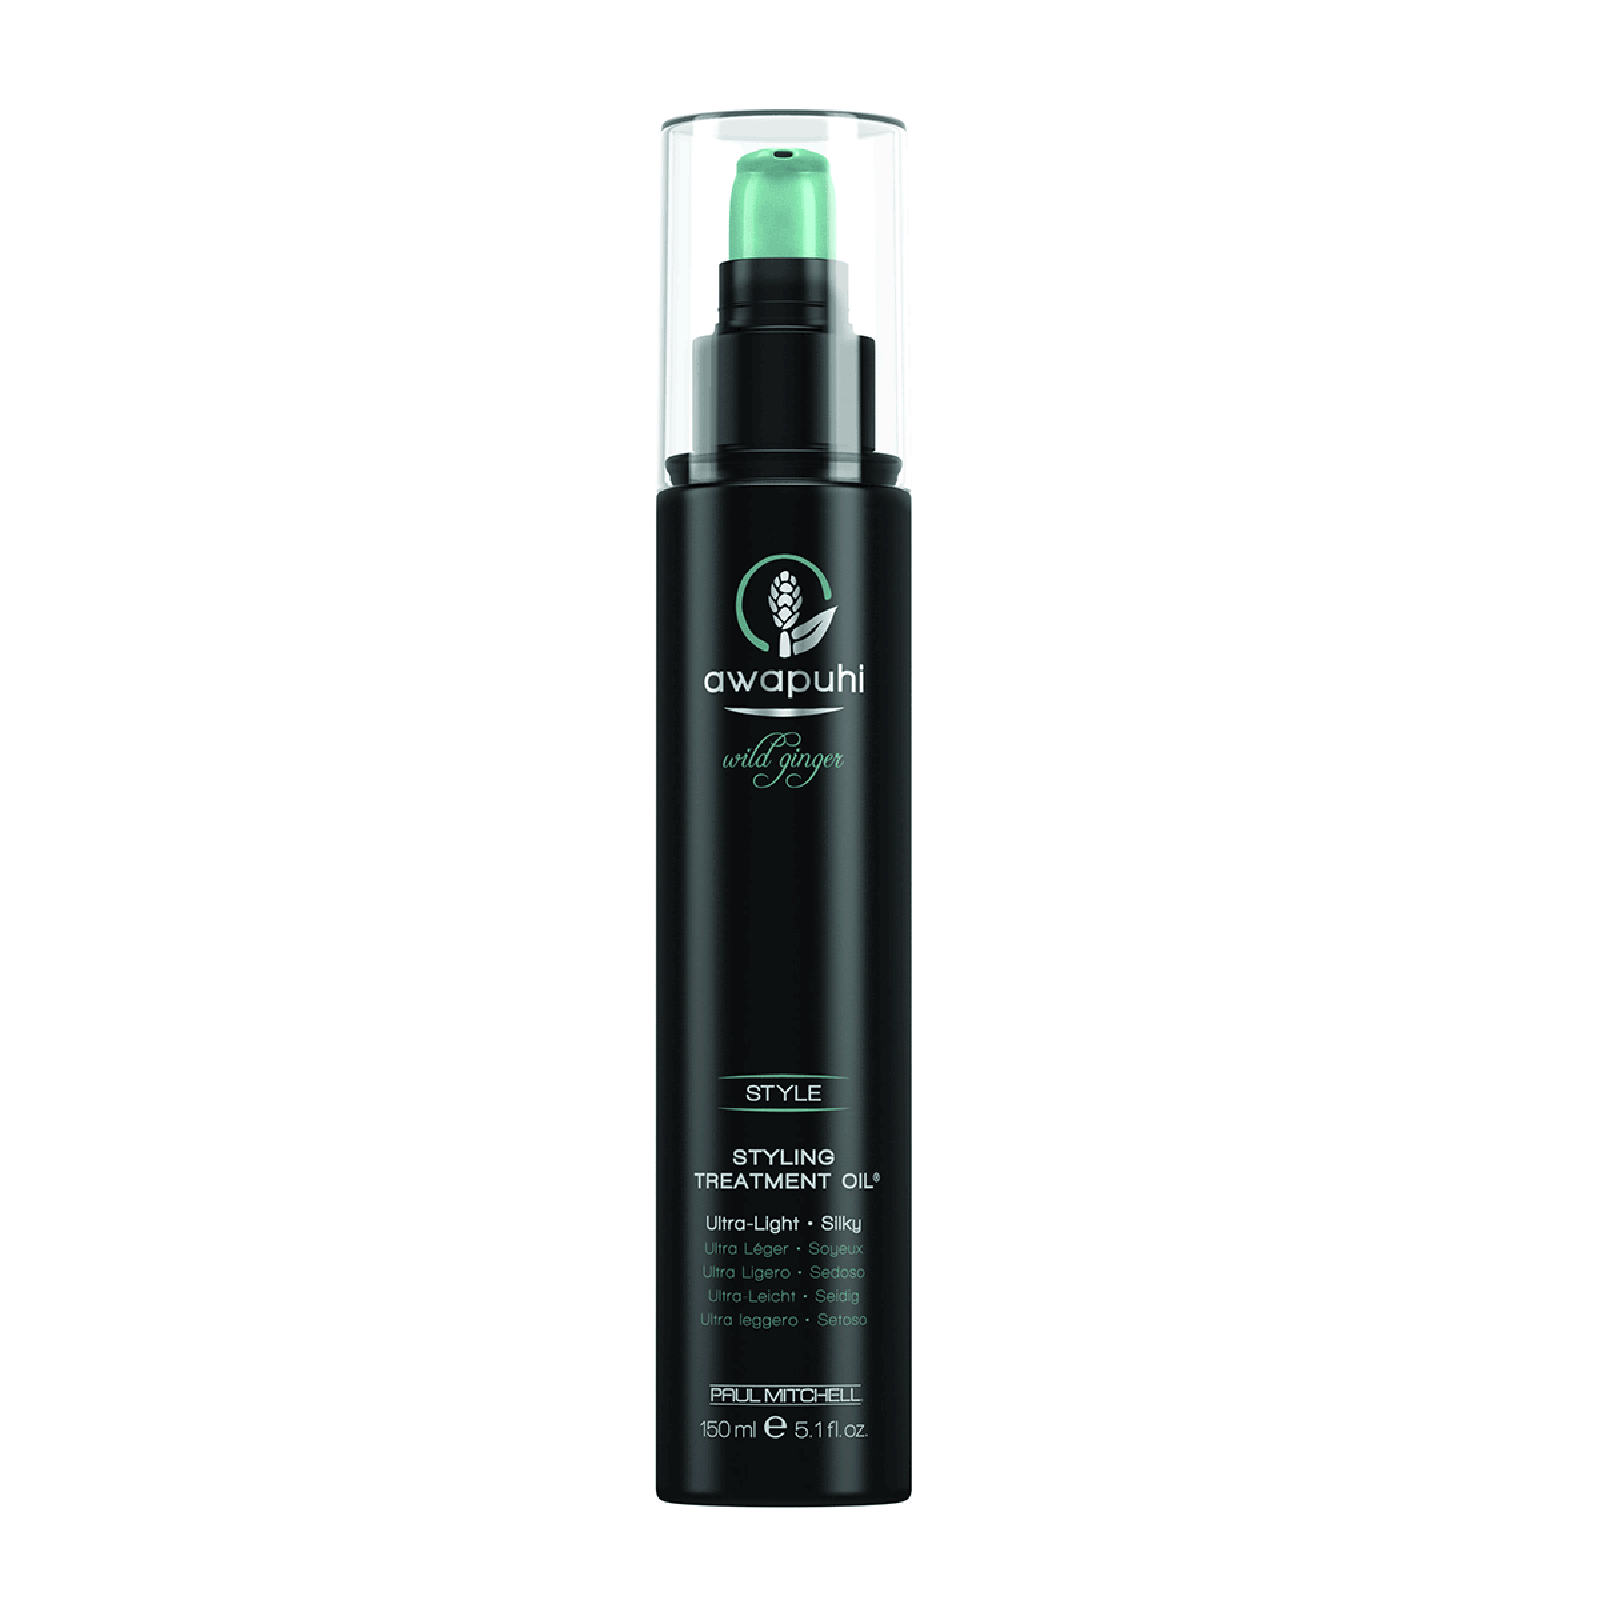 Awapuhi Wild Ginger - Styling Treatment Oil